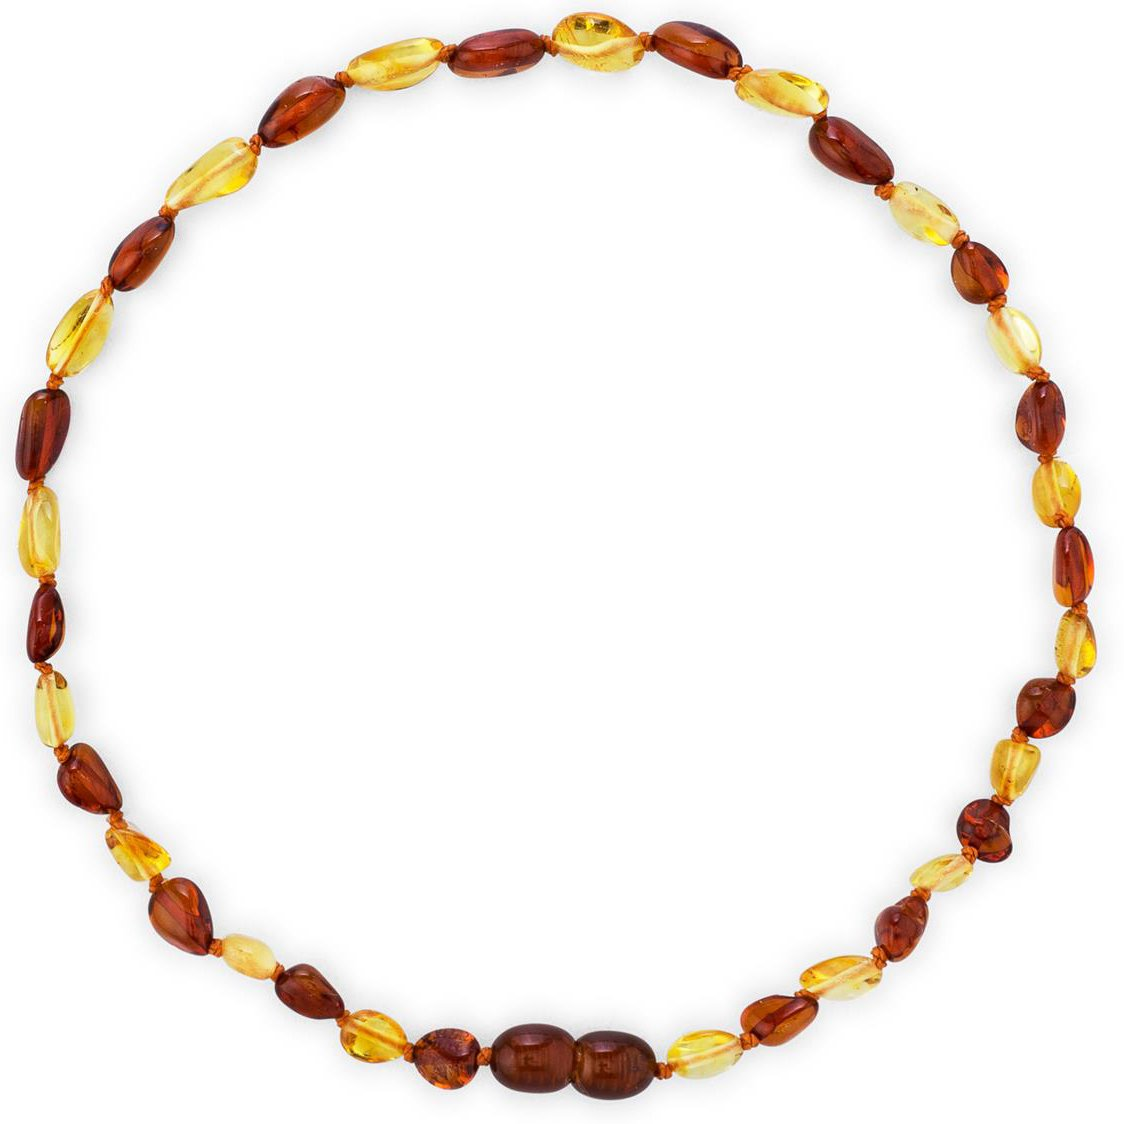 Amber Teething Necklace for Babies (Unisex) (Olive Lemon/Cognac) - Anti Inflammatory, Drooling & Teething Pain Reduce Properties - Natural Certificated Oval Baltic Jewelry with The Highest Quality by Baltic Wonder (Image #2)